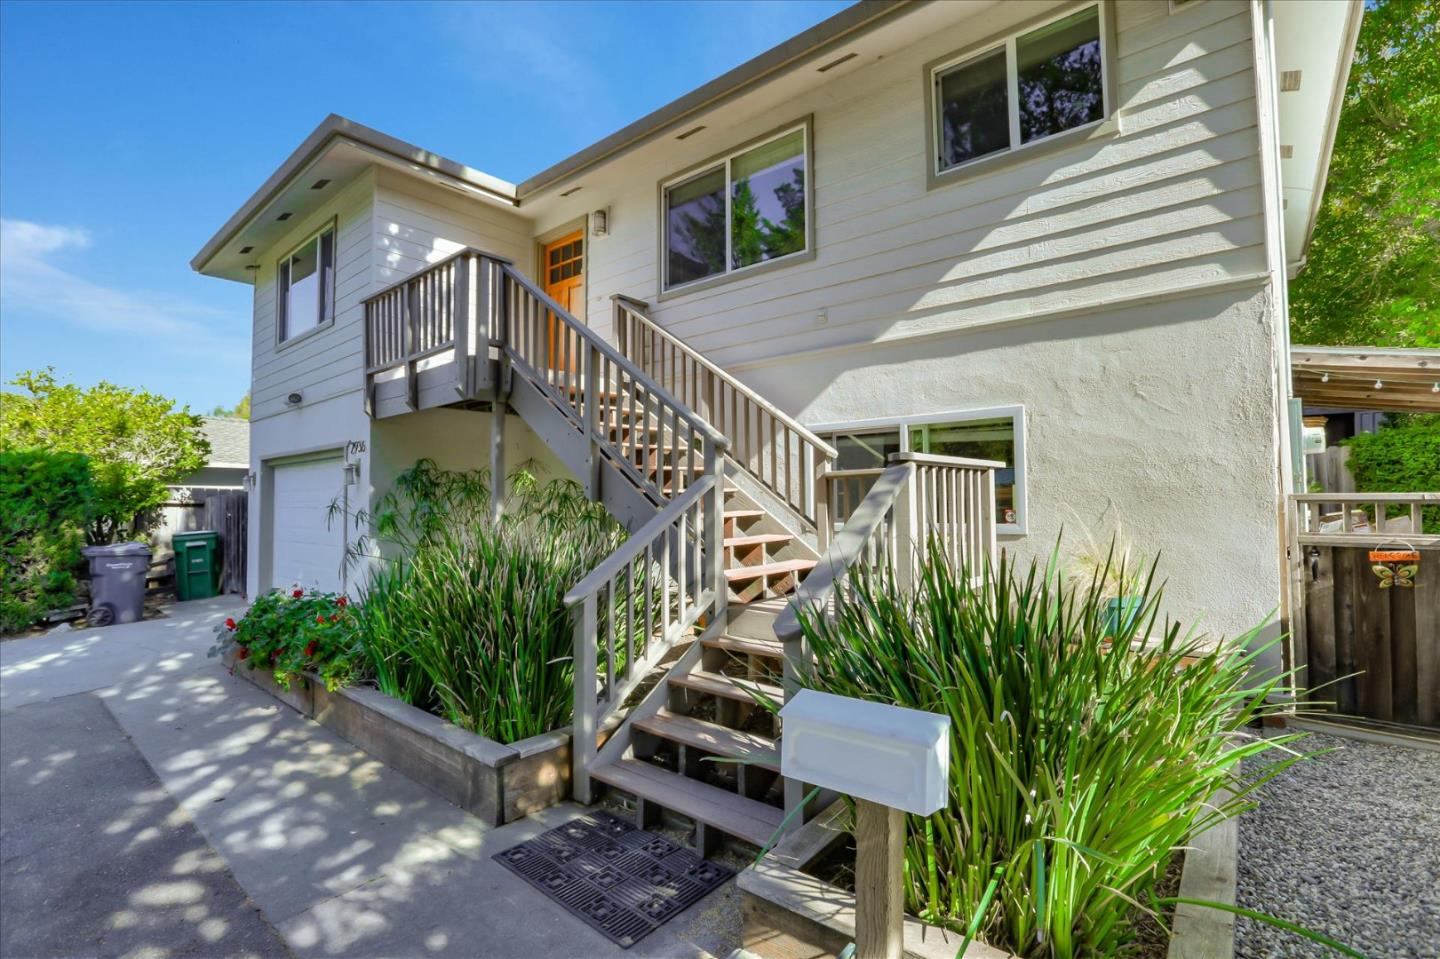 Great investment value located in a beautiful neighborhood 5 minutes from the freeway, 10 minutes from the beach and 20 minutes from San Jose. Scotts Valley schools are some of the best in the area. This solar 4 bedroom 2 bath home was updated 9 years ago with an option for two separate living areas.  Enter this bright, open home and glide over hardwood and tile floors to a gourmet kitchen or lovely gathering room with fireplace. Treetop views via double paned windows. Ample parking, generous lot with a spacious garden. Generous storage in bedroom closets, hall and bath closets, attic and rear of home.